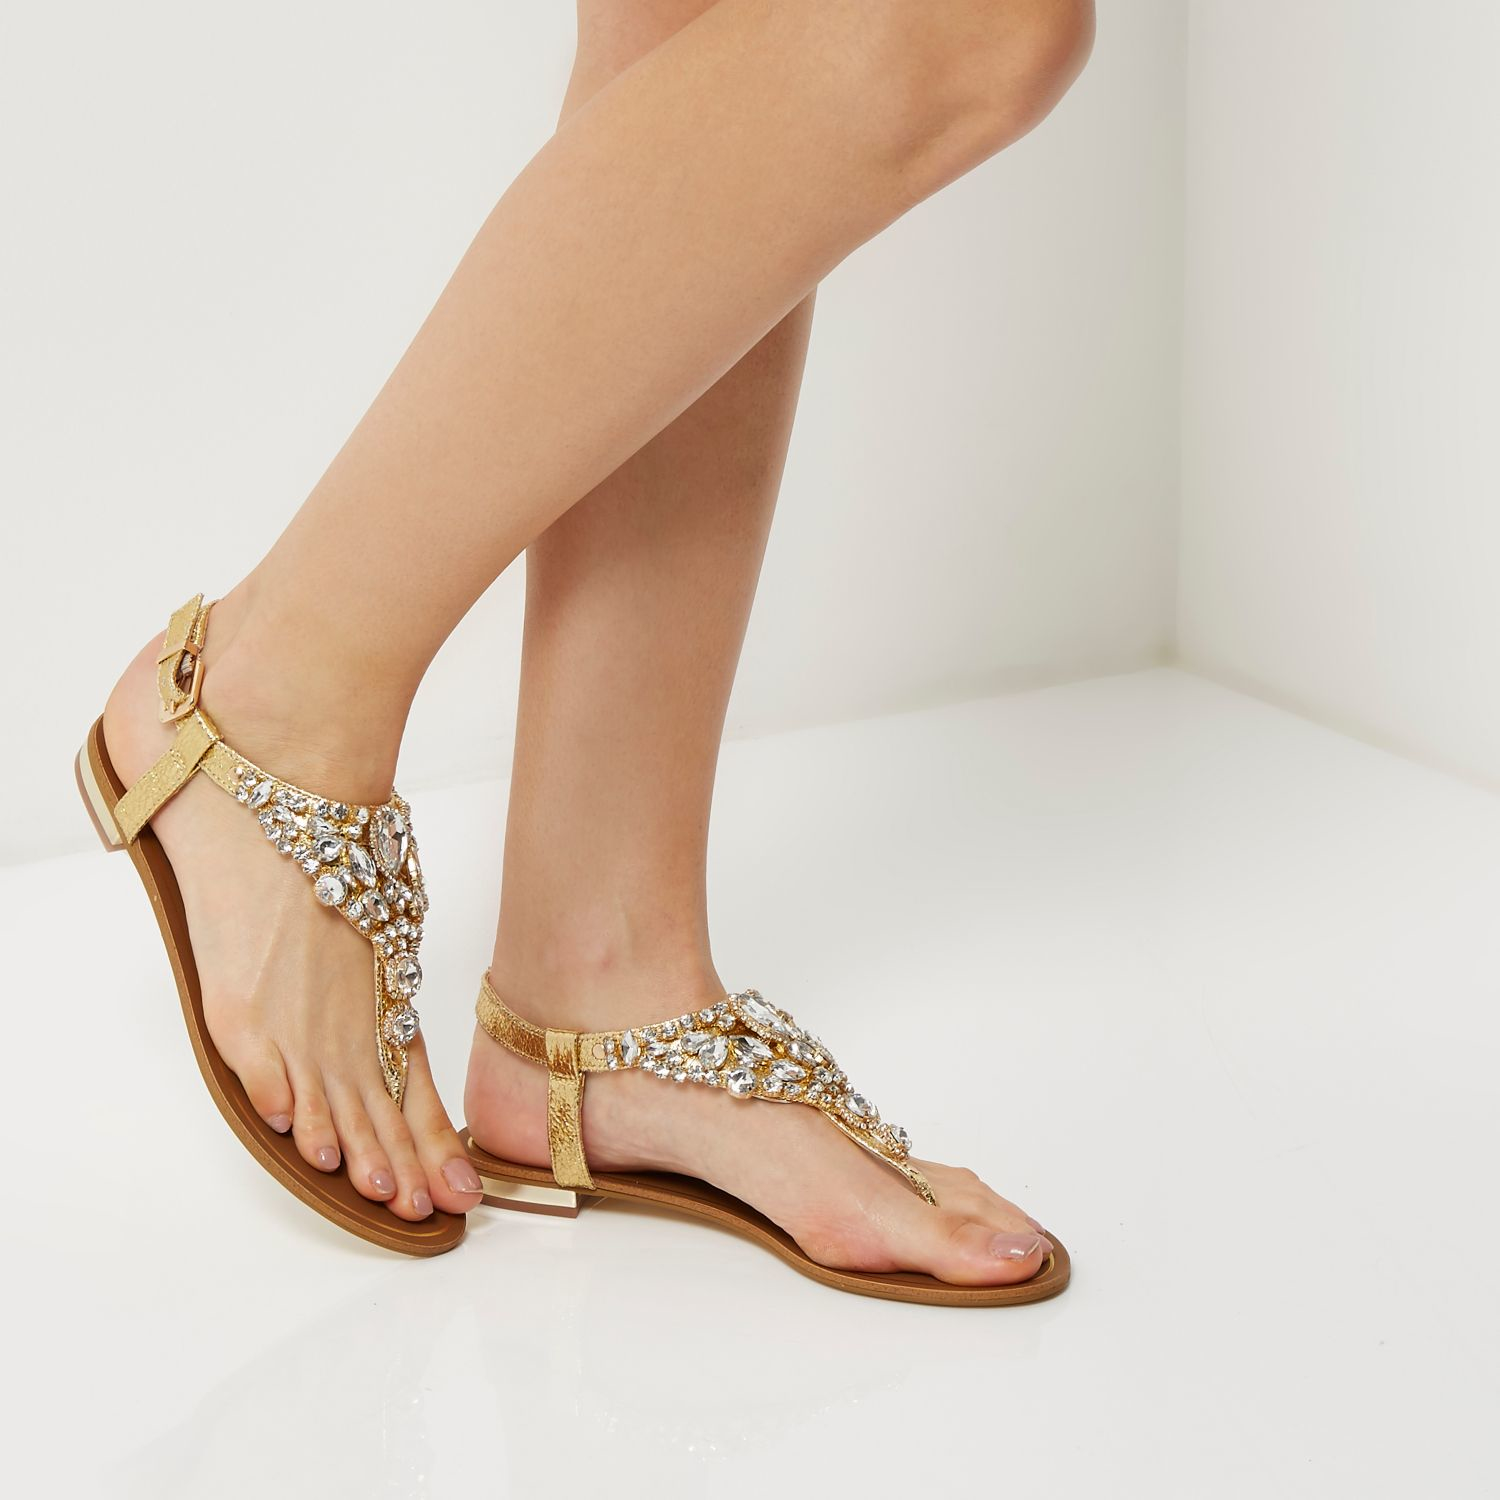 b3bd61ad5bc Lyst - River Island Gold Metallic Embellished Sandals in Brown